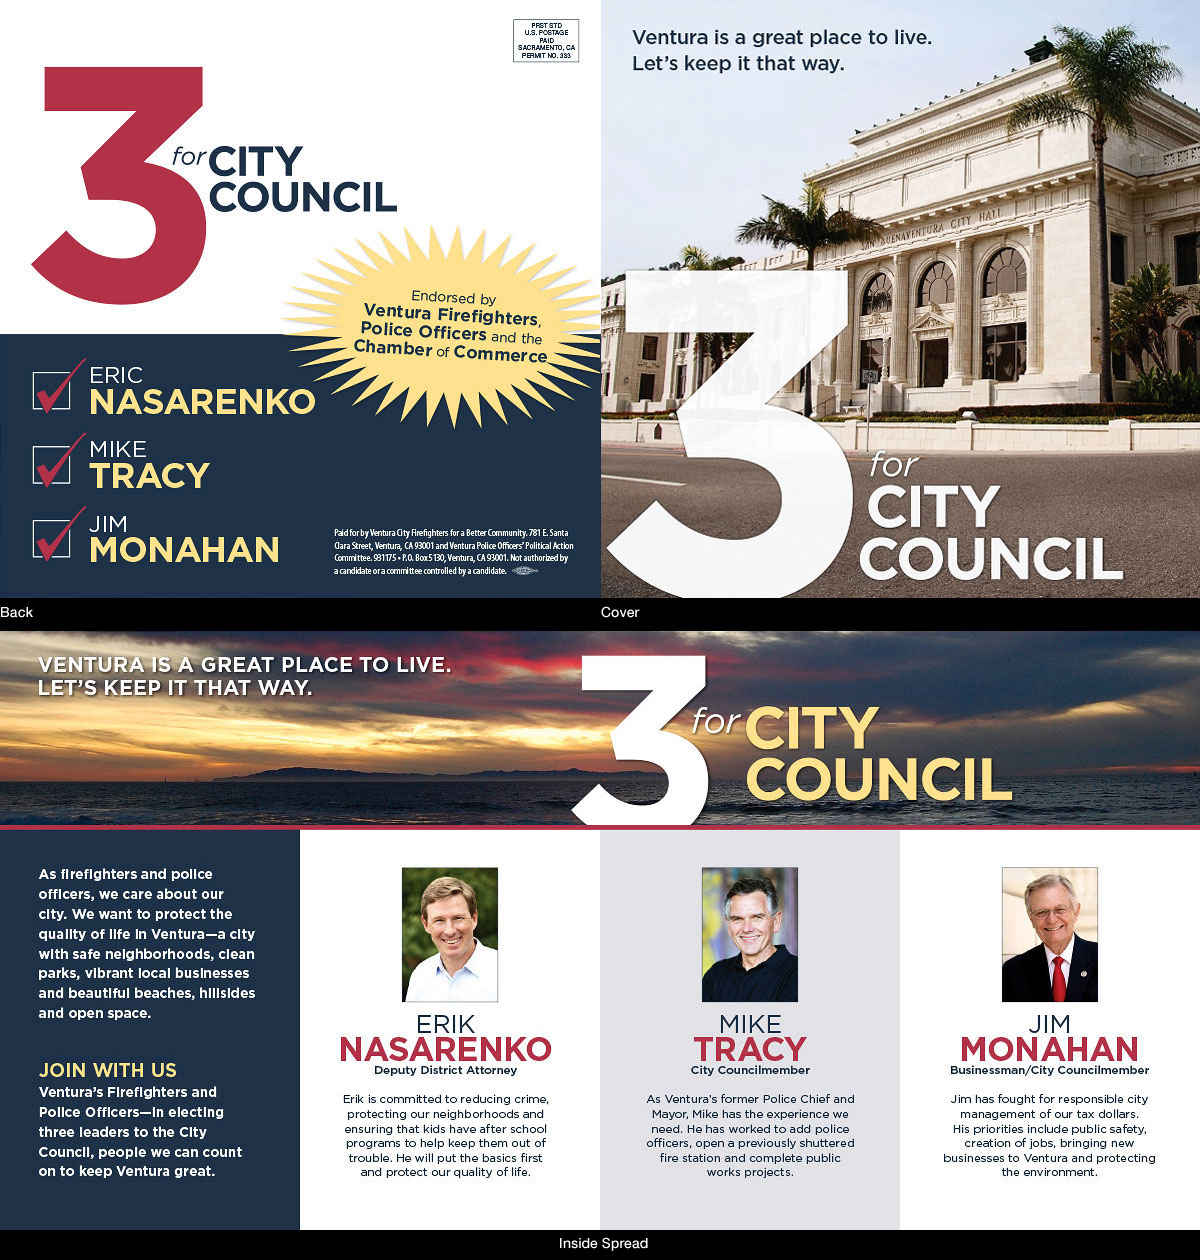 3-for-City-Council-Mailer-v2.jpg